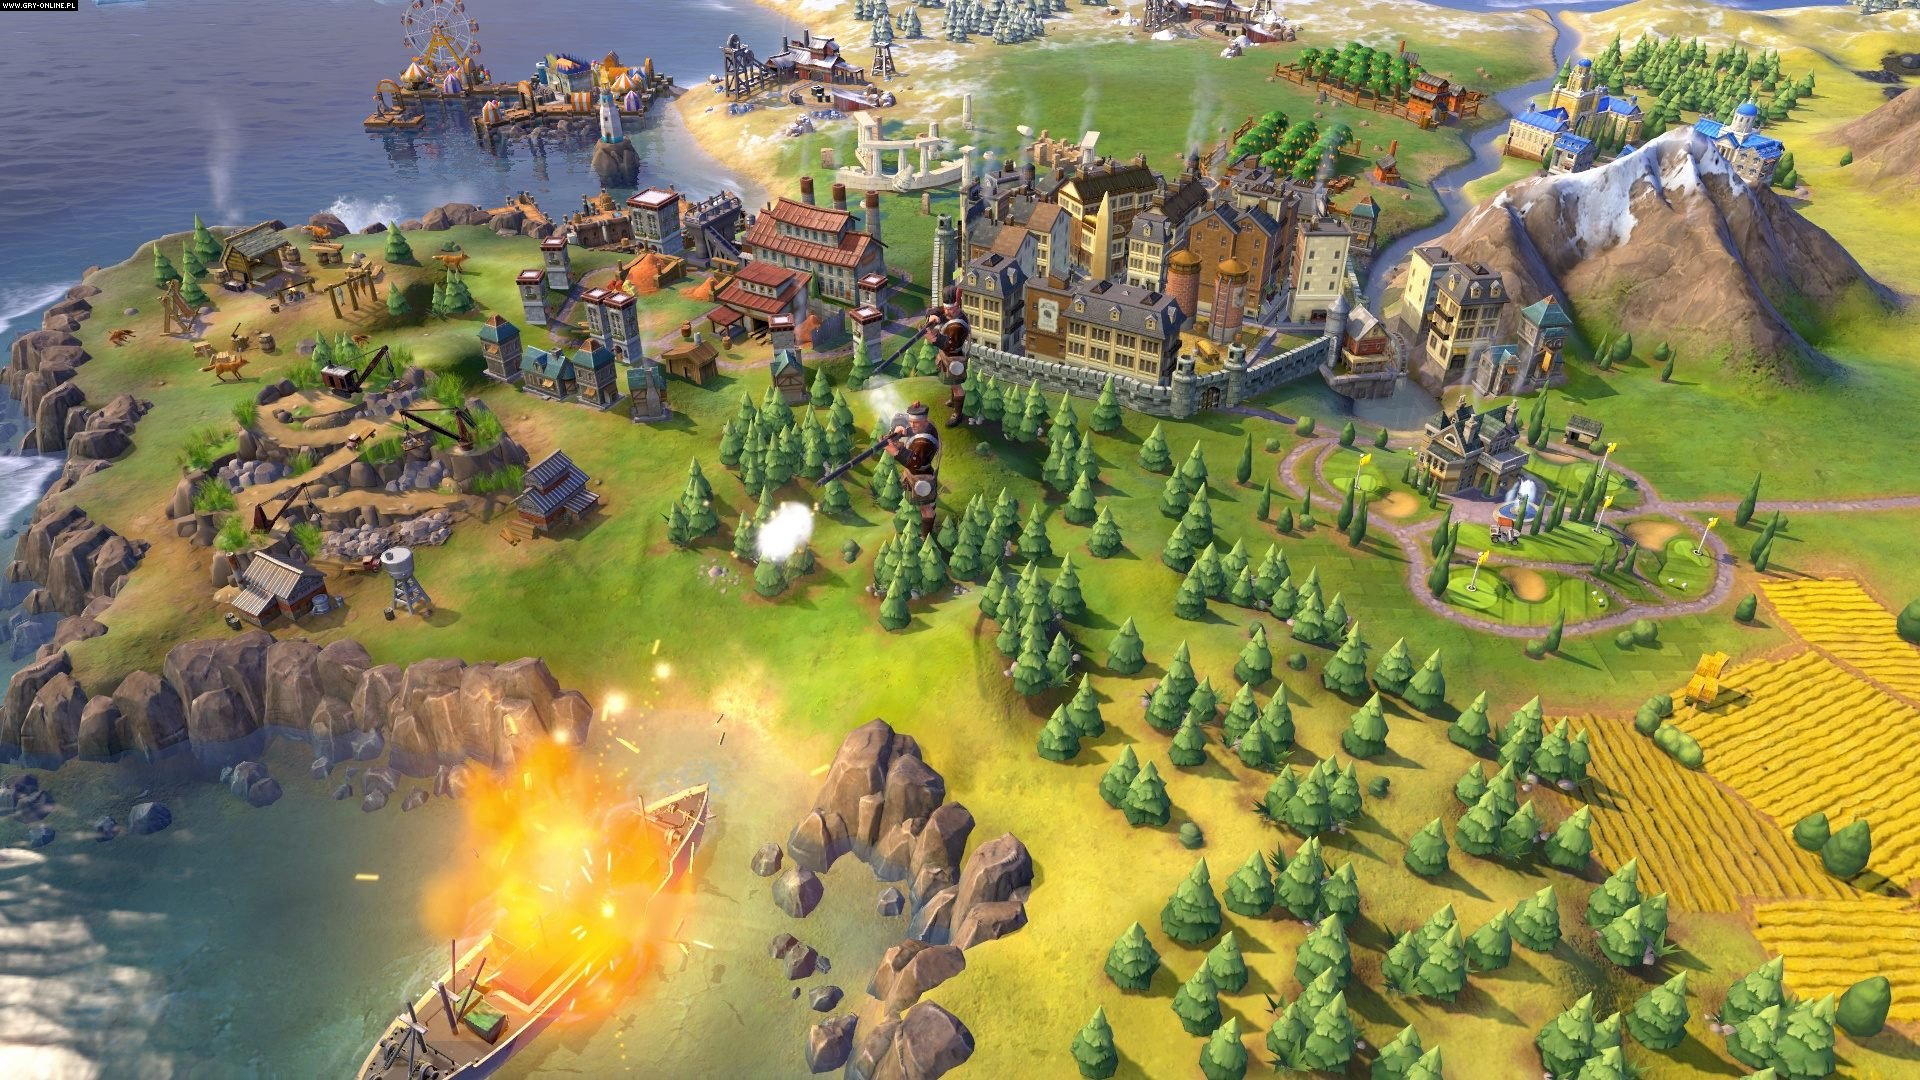 Sid Meier's Civilization VI: Rise and Fall PC Gry Screen 1/19, Firaxis Games, 2K Games